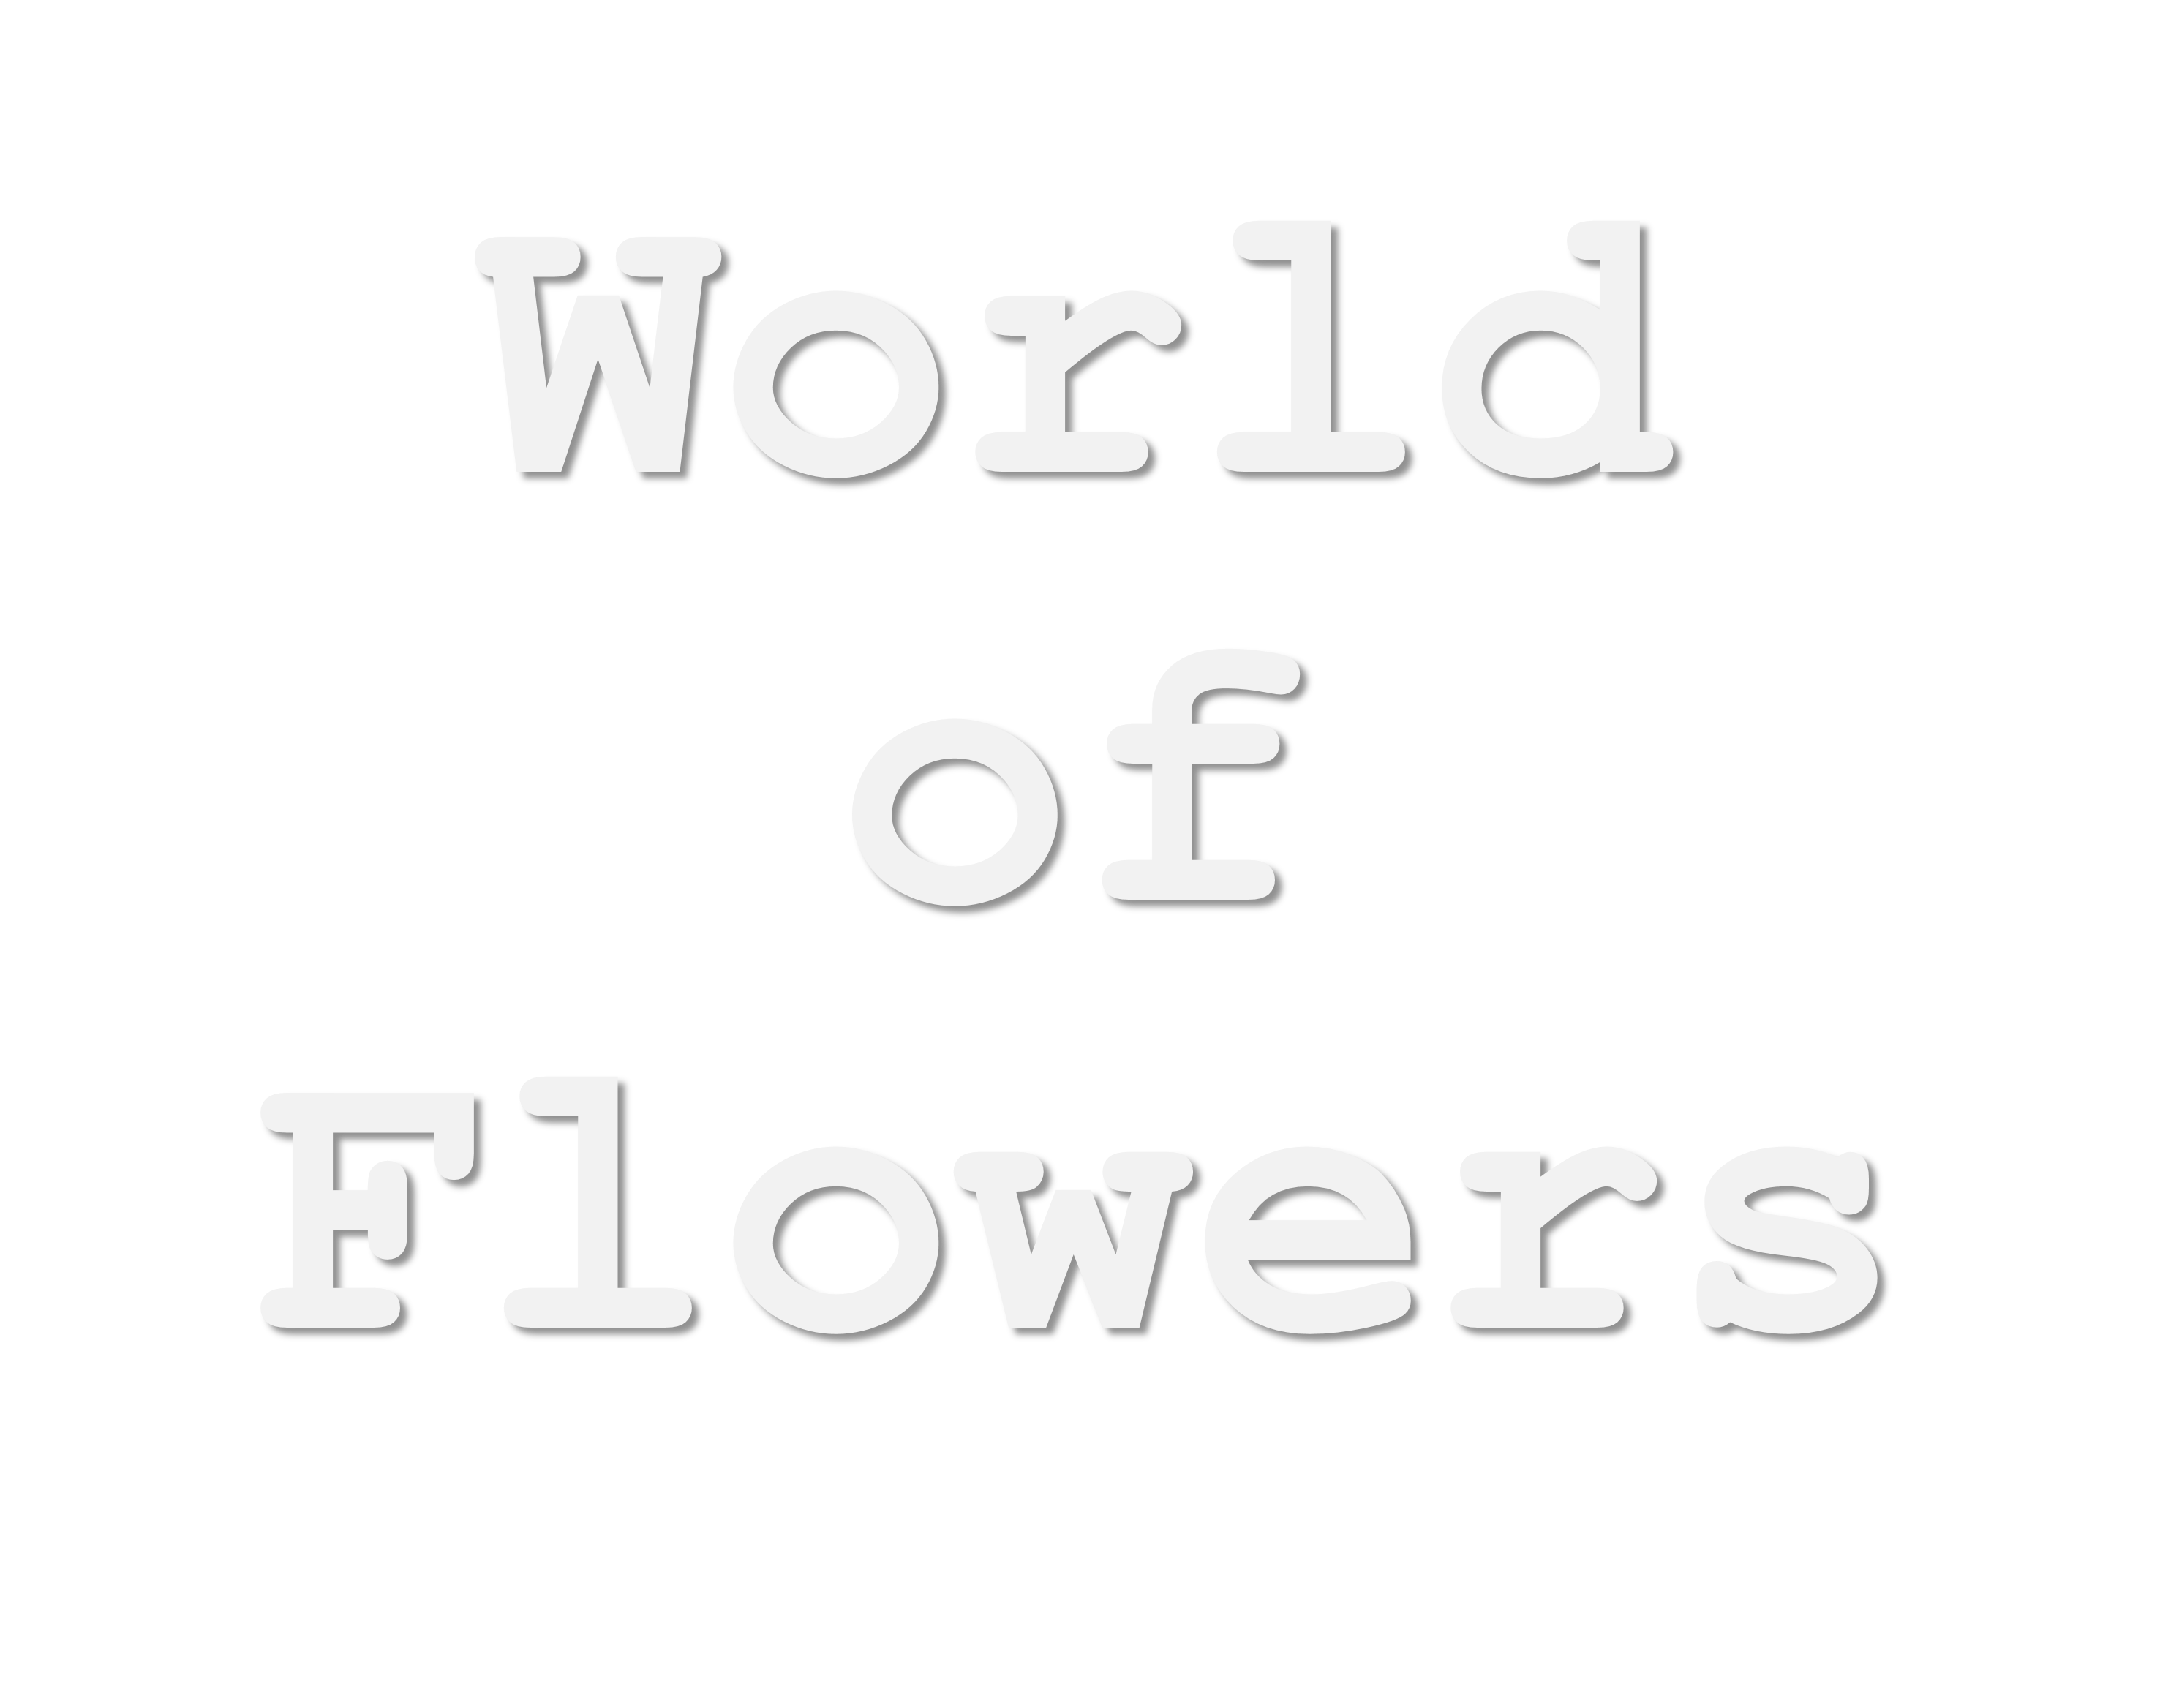 Brooklyn florist flower delivery by world of flowers izmirmasajfo